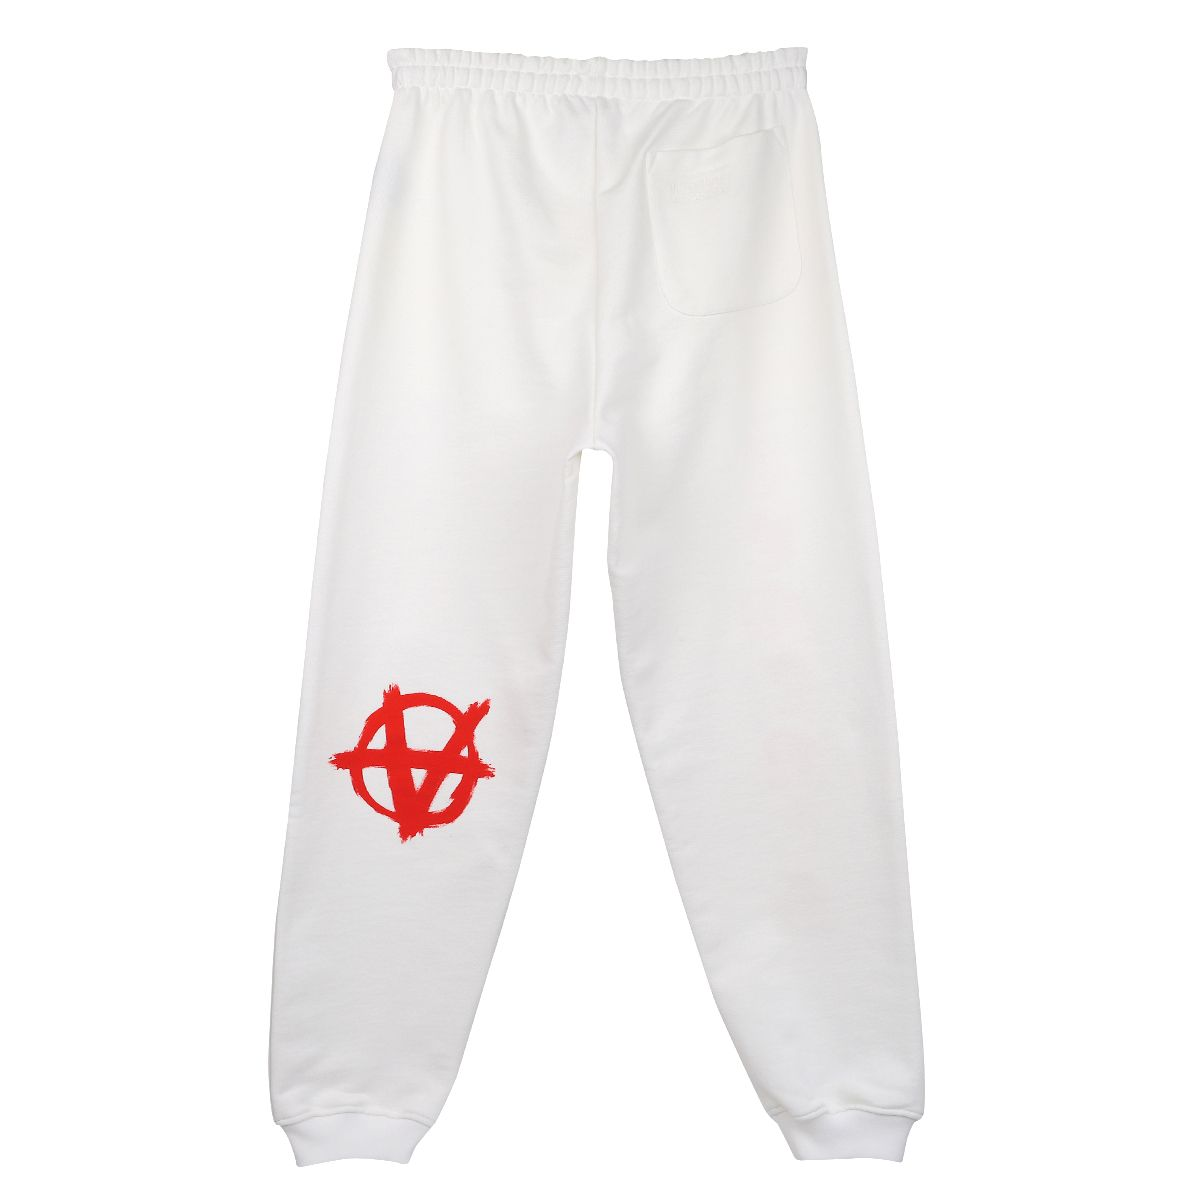 VETEMENTS ANARCHY GOTHIC LOGO SWEATPANT / WHITE-RED